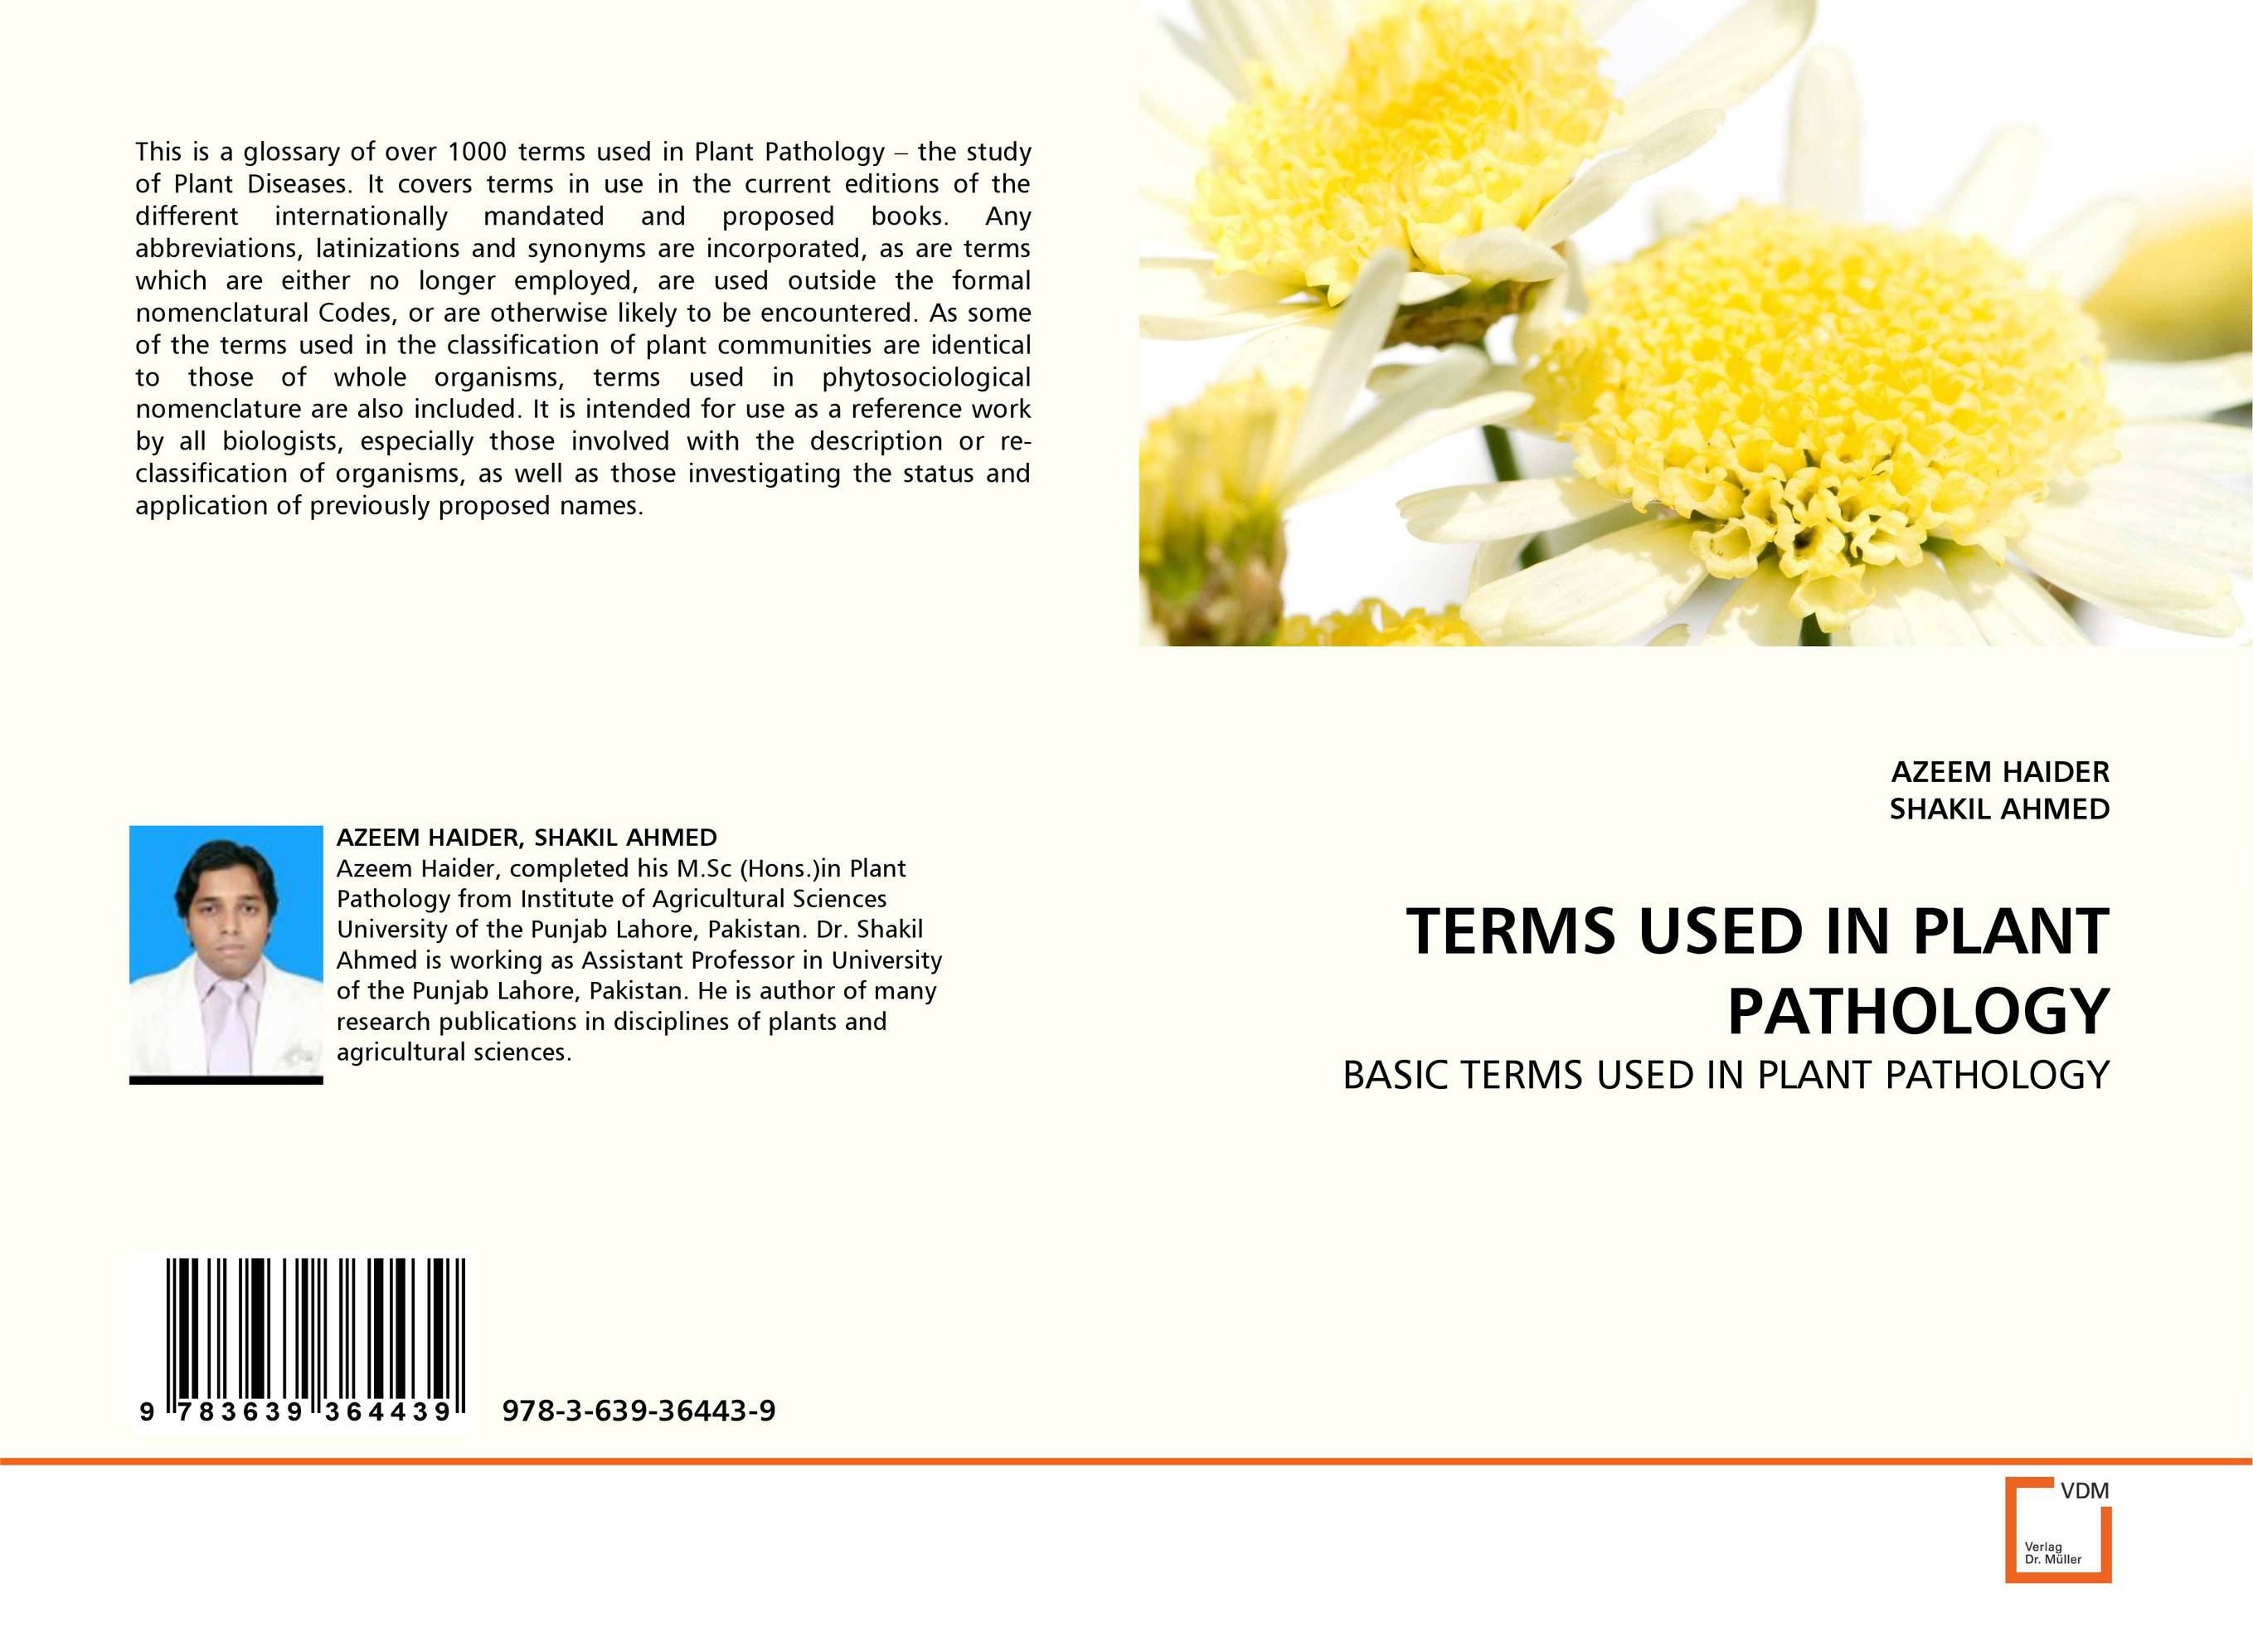 TERMS USED IN PLANT PATHOLOGY the use of preposition sense in semantic argument classification